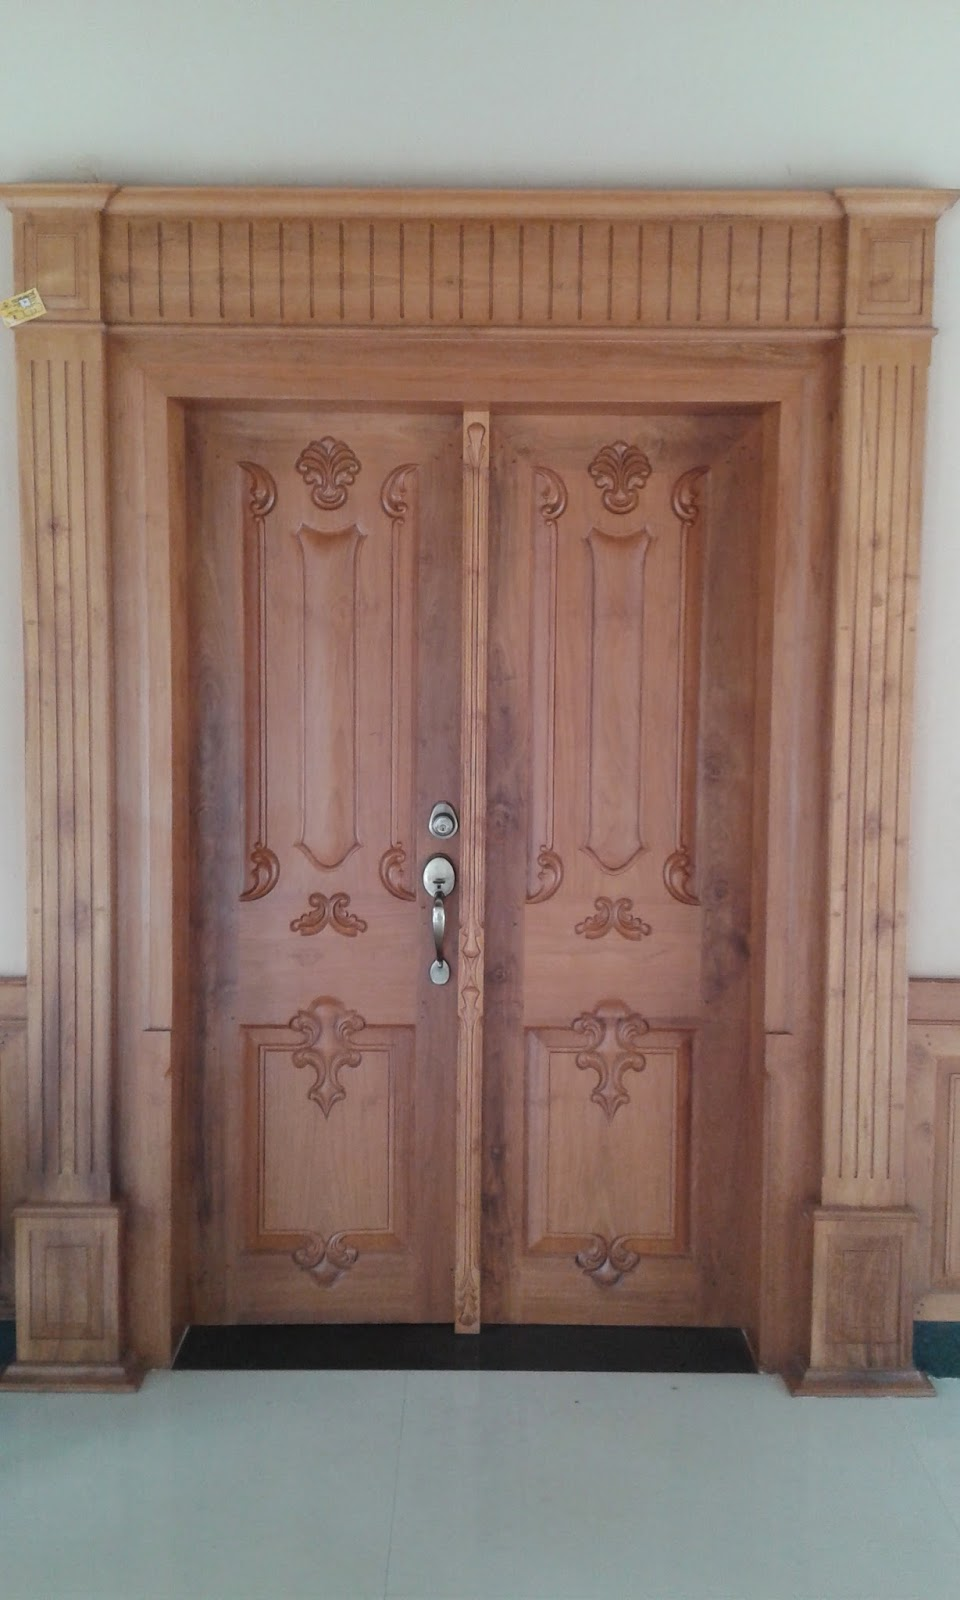 Kerala style carpenter works and designs - Indian home front door design ...